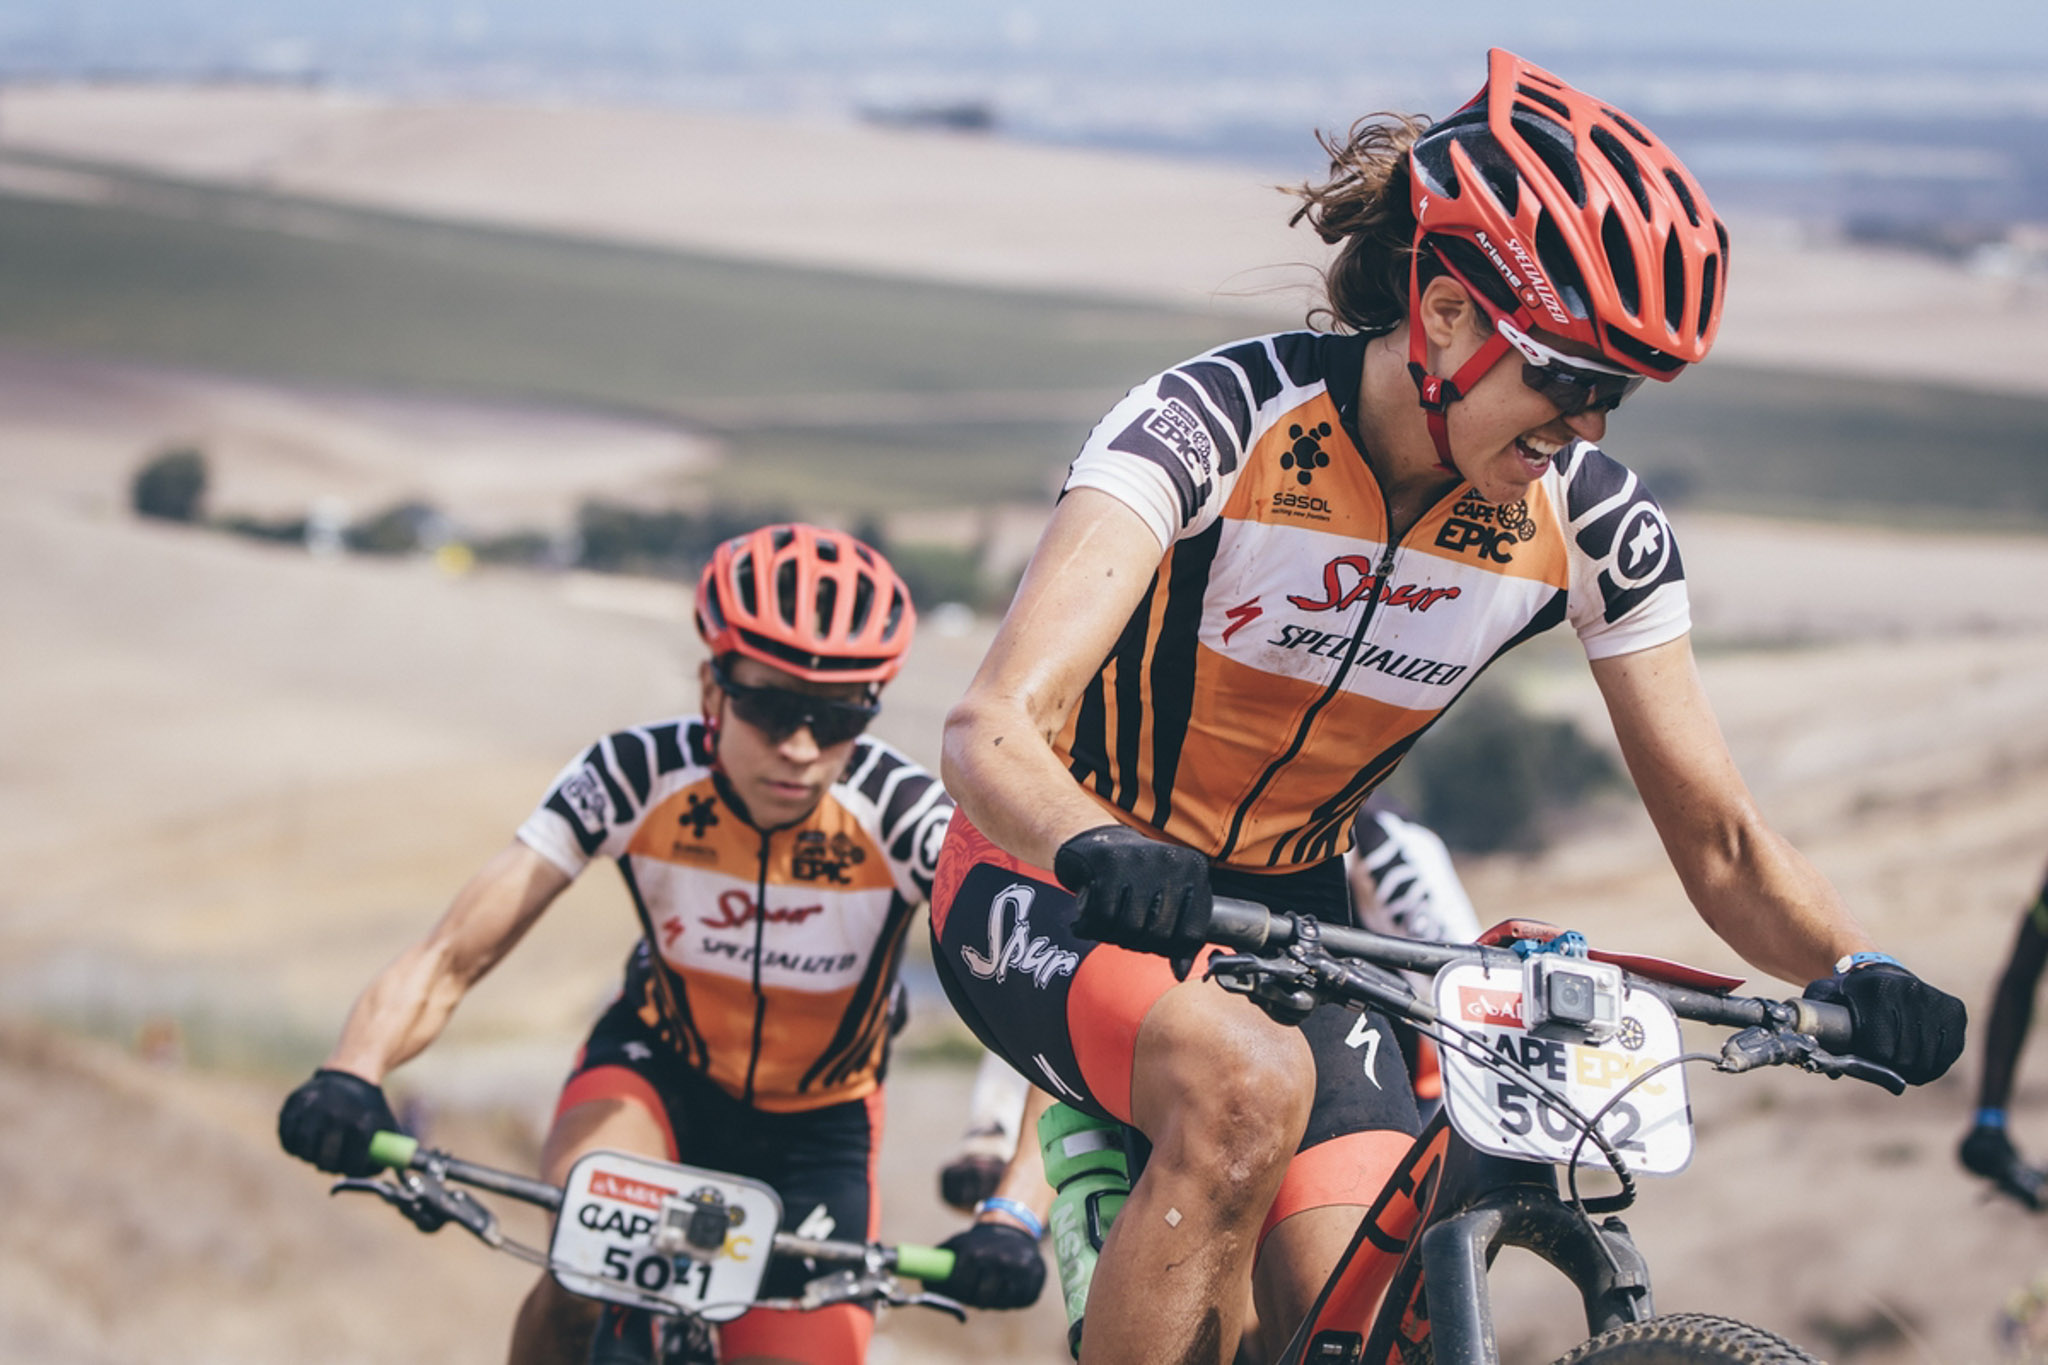 Team Spur Specialized's Ariane Kleinhans and Annika Langvad on their way to overall victory in the ladies category during the final stage (stage 7) of the 2016 Absa Cape Epic Mountain Bike stage race from Boschendal in Stellenbosch to Meerendal Wine Estate in Durbanville, South Africa on the 20th March 2016 Photo by Ewald Sadie/Cape Epic/SPORTZPICS PLEASE ENSURE THE APPROPRIATE CREDIT IS GIVEN TO THE PHOTOGRAPHER AND SPORTZPICS ALONG WITH THE ABSA CAPE EPIC ace2016